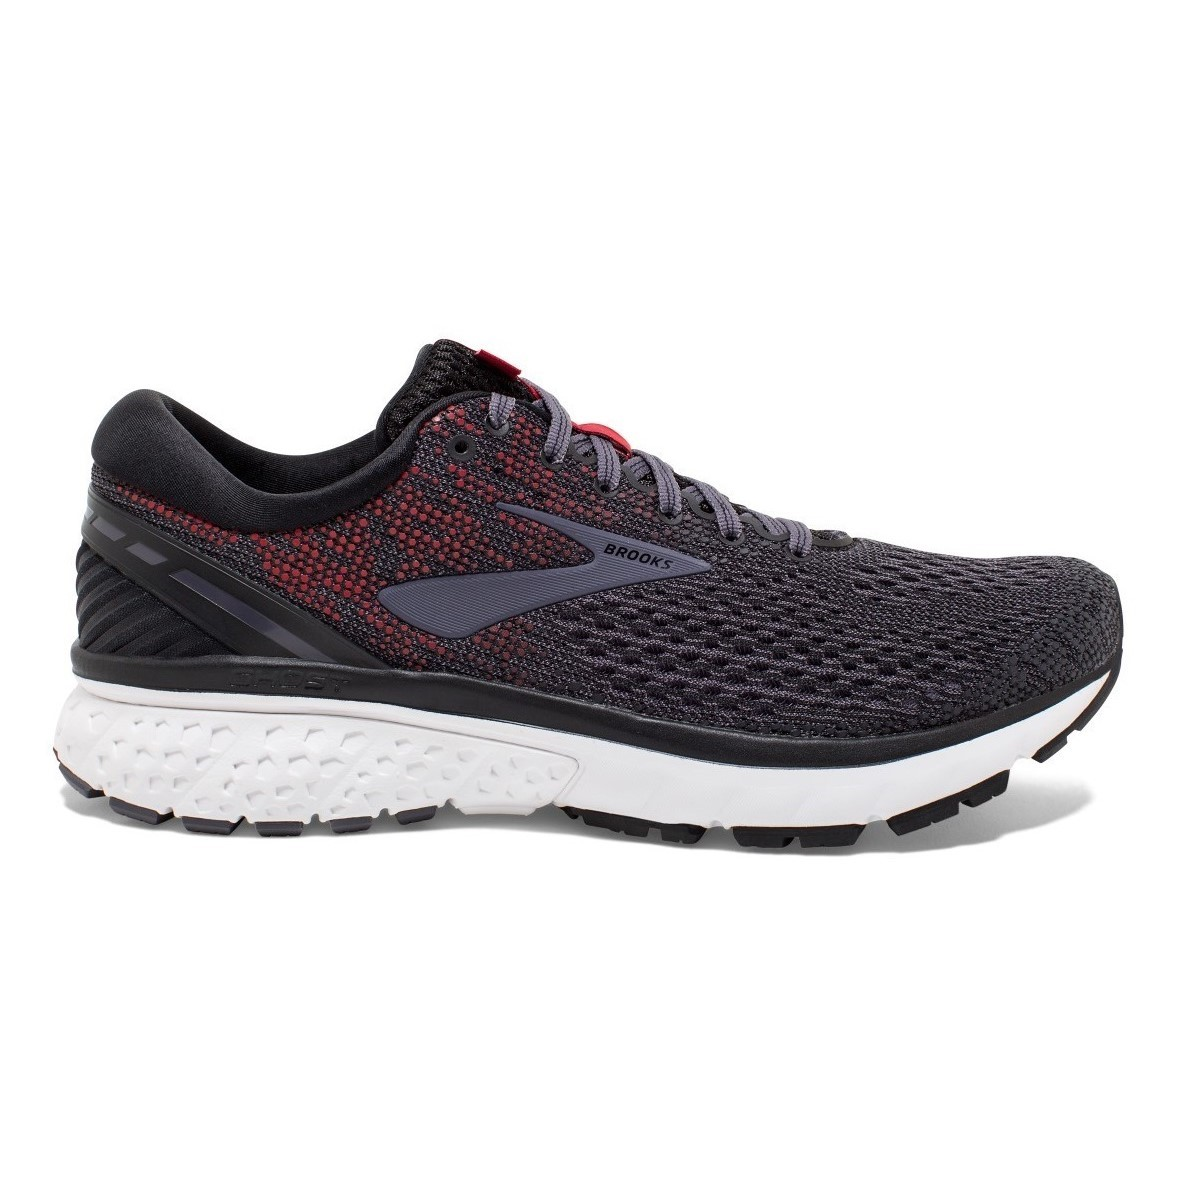 99c2386080d Brooks Ghost 11 - Mens Running Shoes - Black Graystone Cherry ...